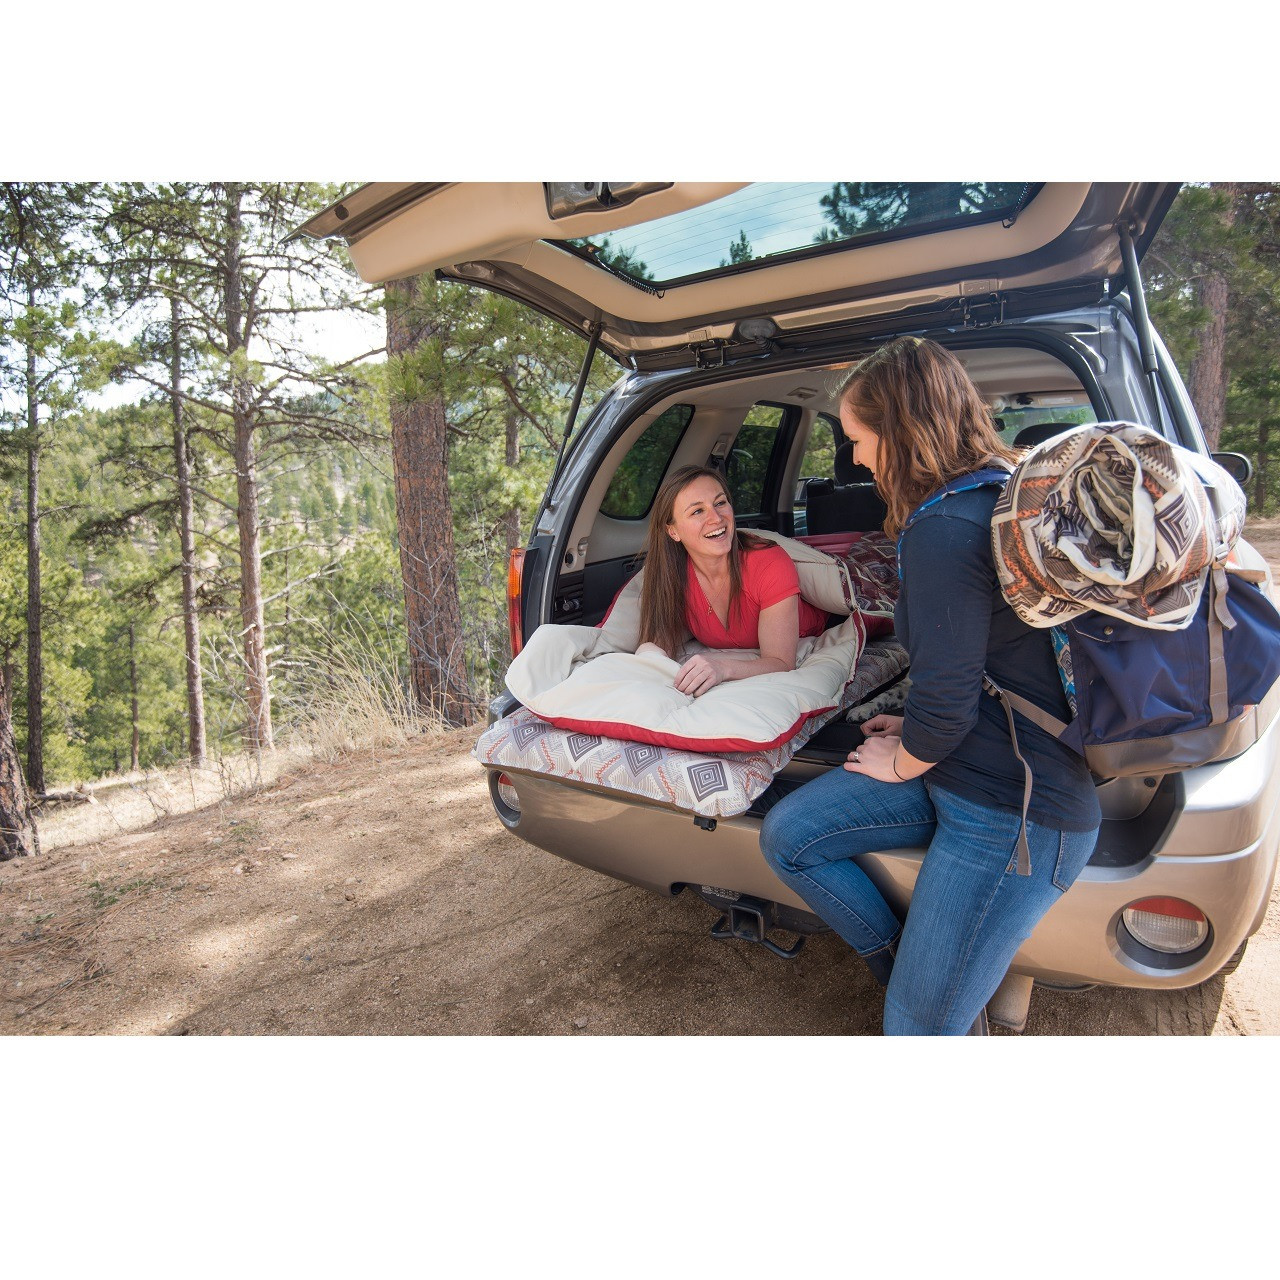 Woman laying in the back of a car on a Wenzel sleeping pad in a Wenzel Pop-Top sleeping bag talking to another woman outside the car